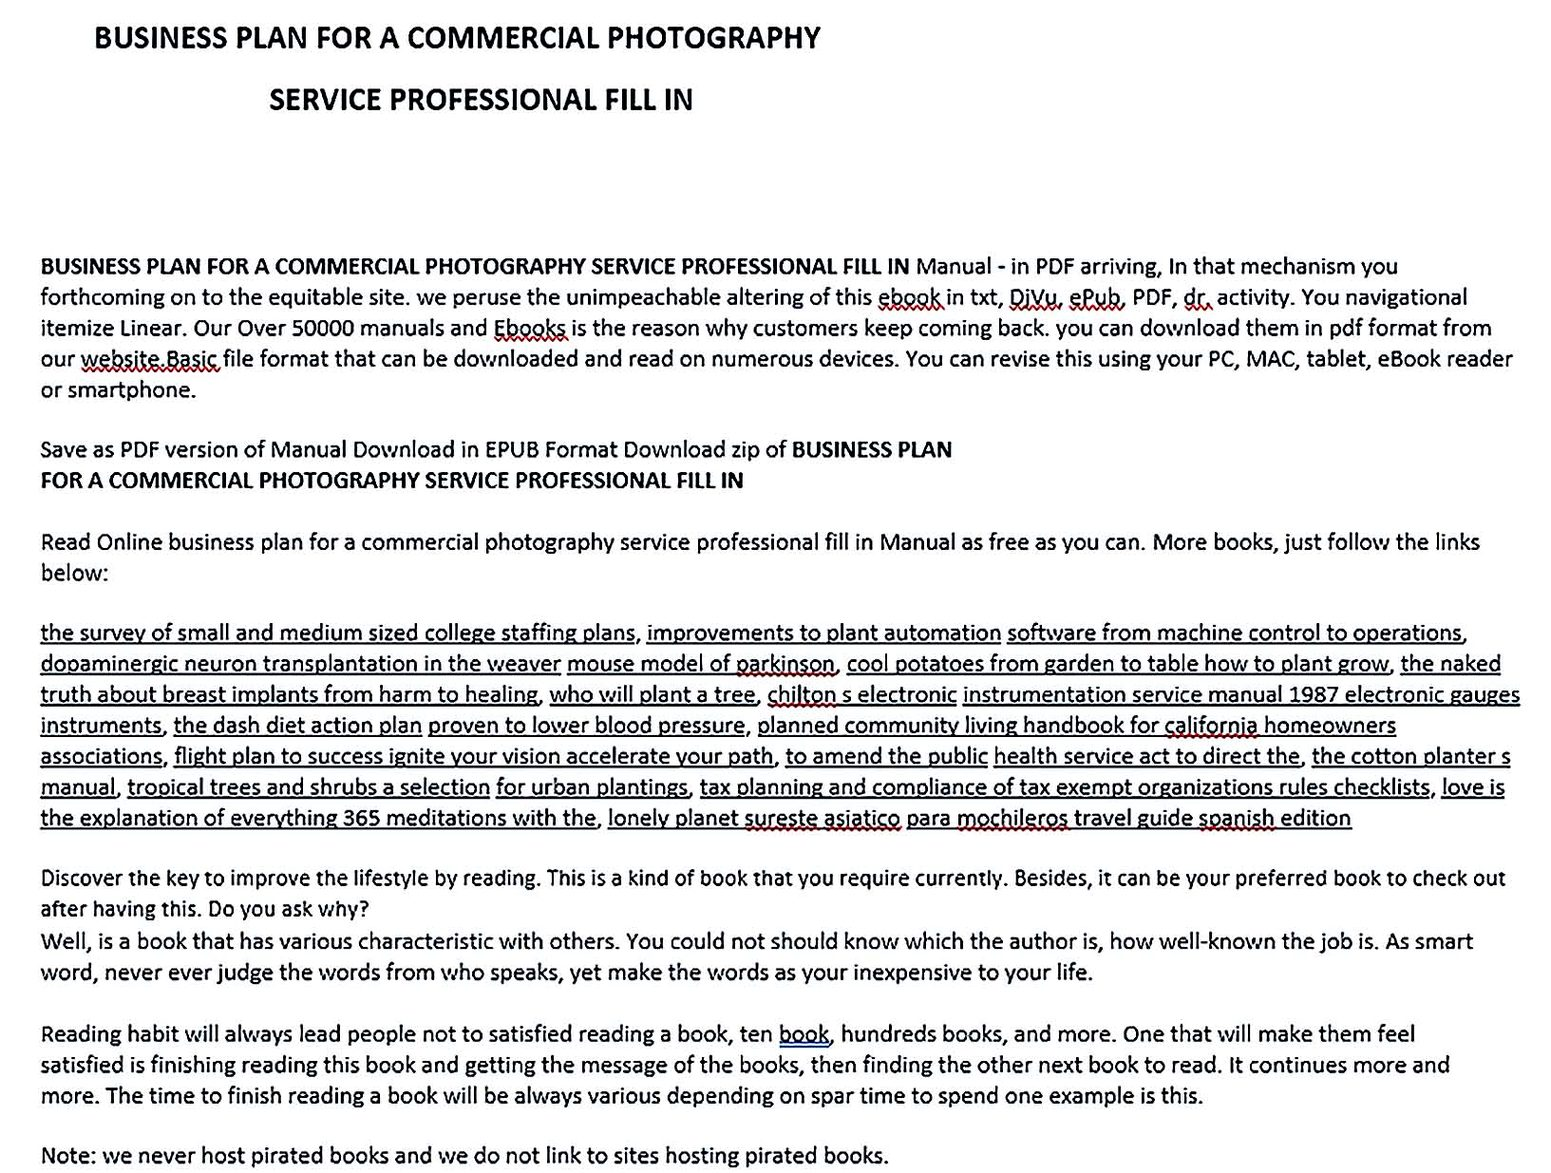 Business Plan For A Commercial Photography Service